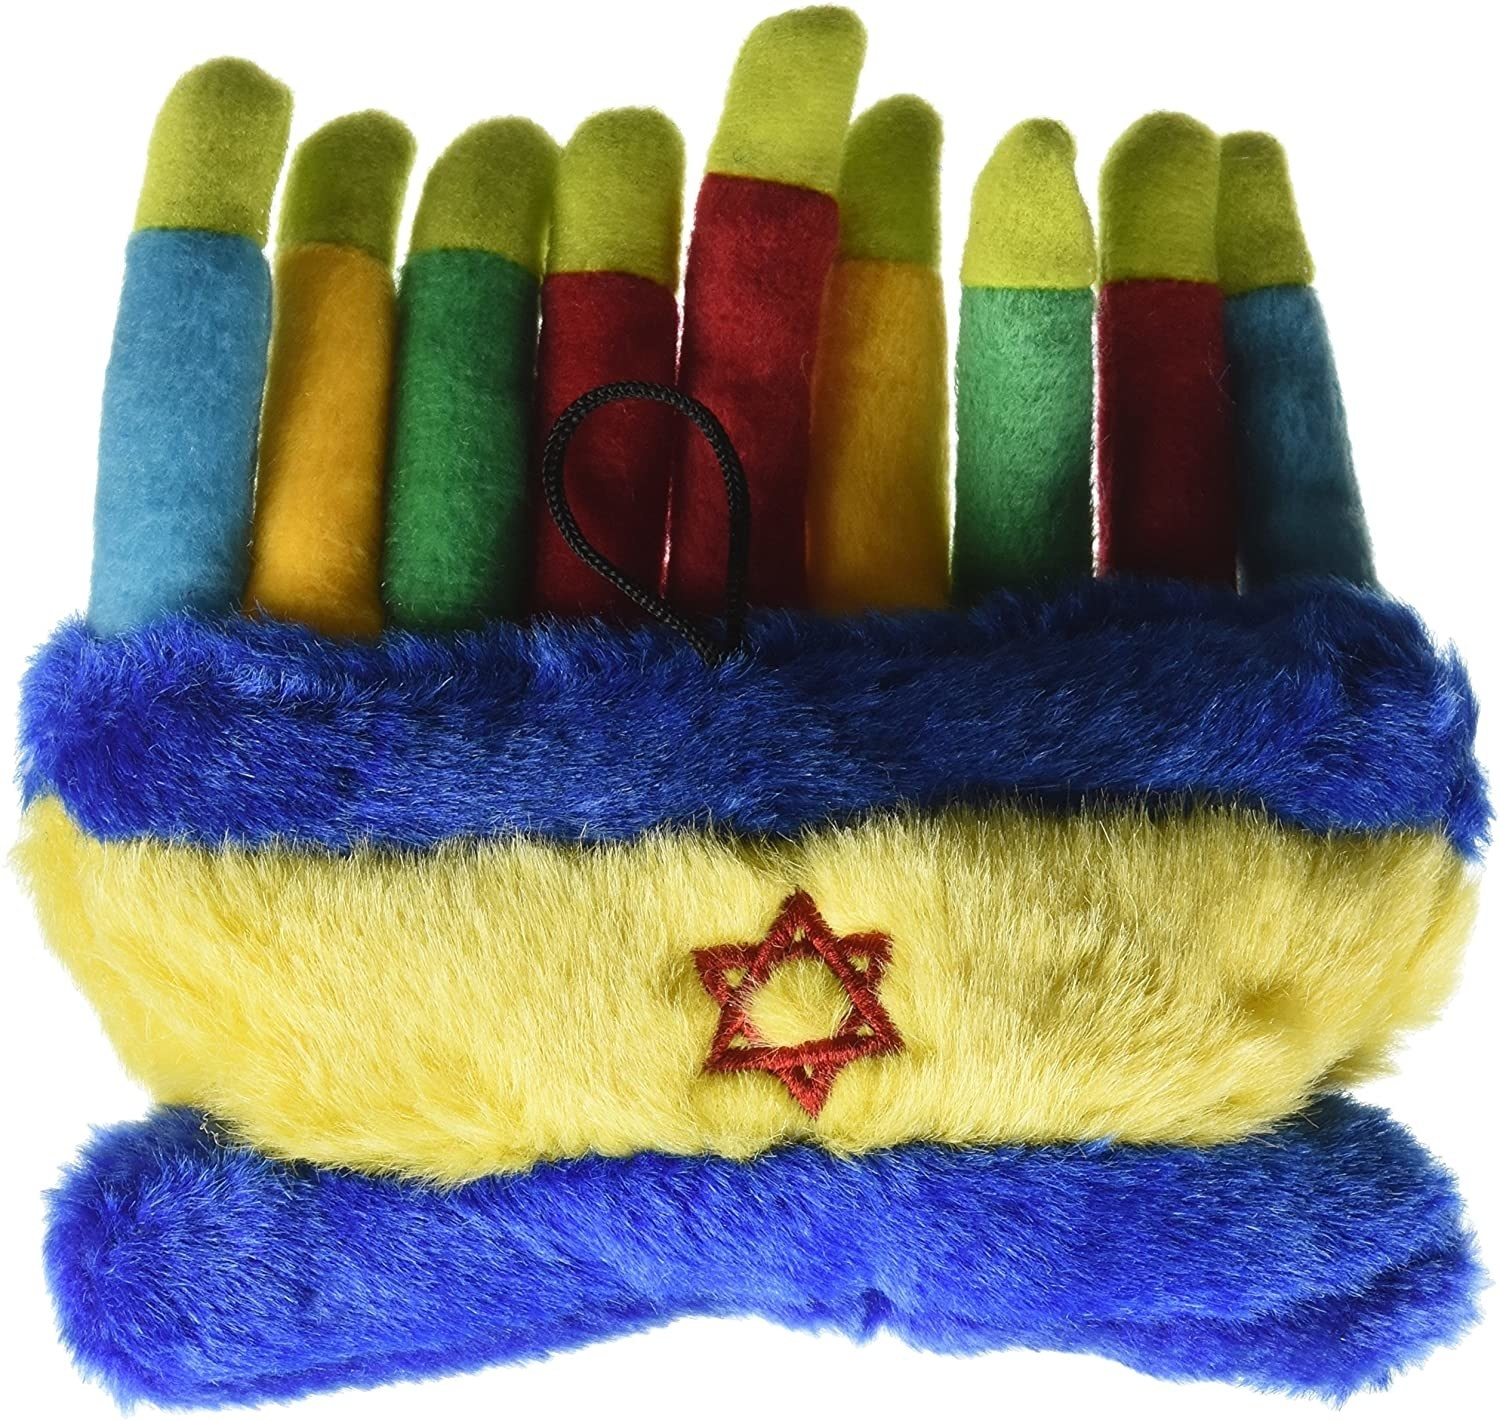 The plush toy, which looks like a menorah, and has a long yellow base with a Star of David on it, and nine plush candles, each with a fabric flame